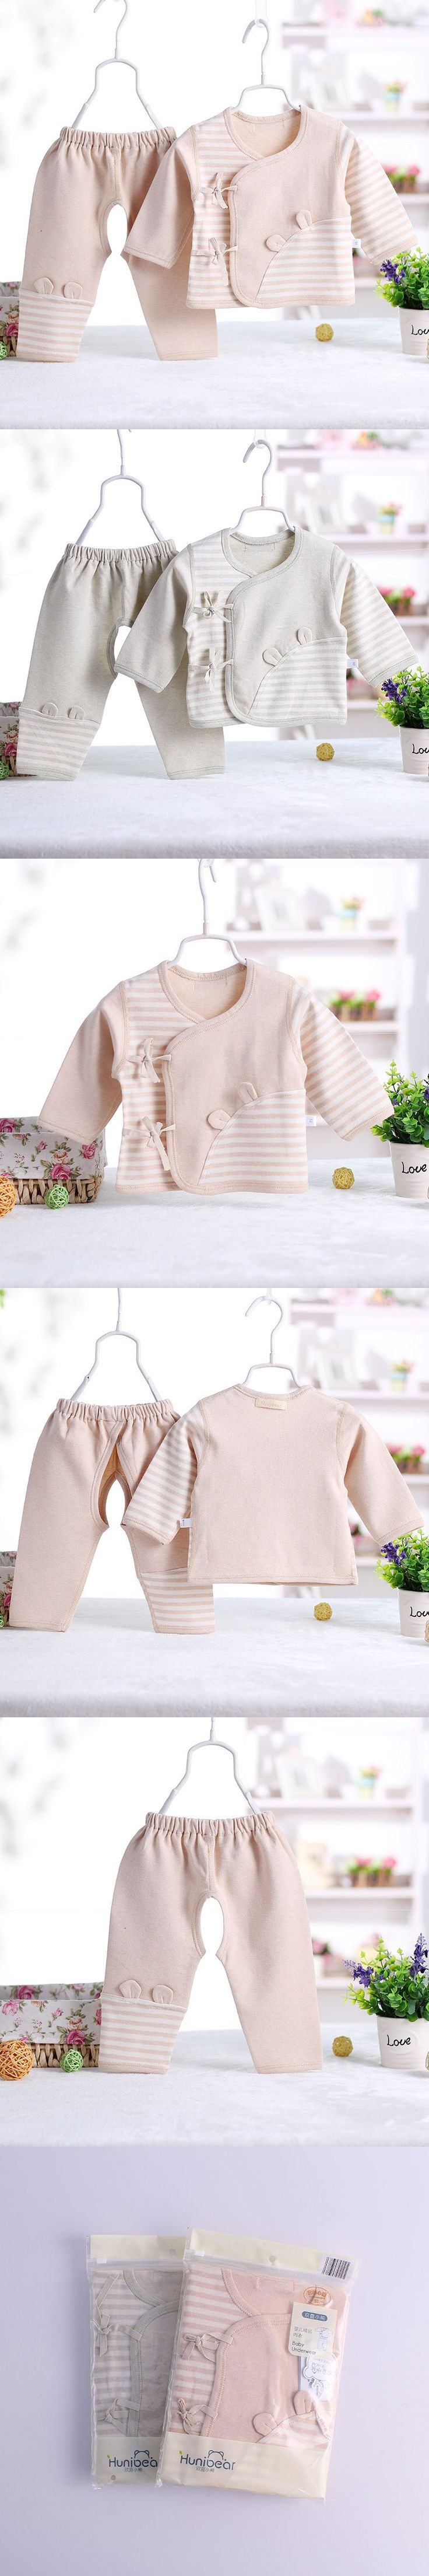 Cotton Original Baby Boy Girl Clothes Set China Casual Autumn Spring Discount Baby Clothing Suit Shirt Pants